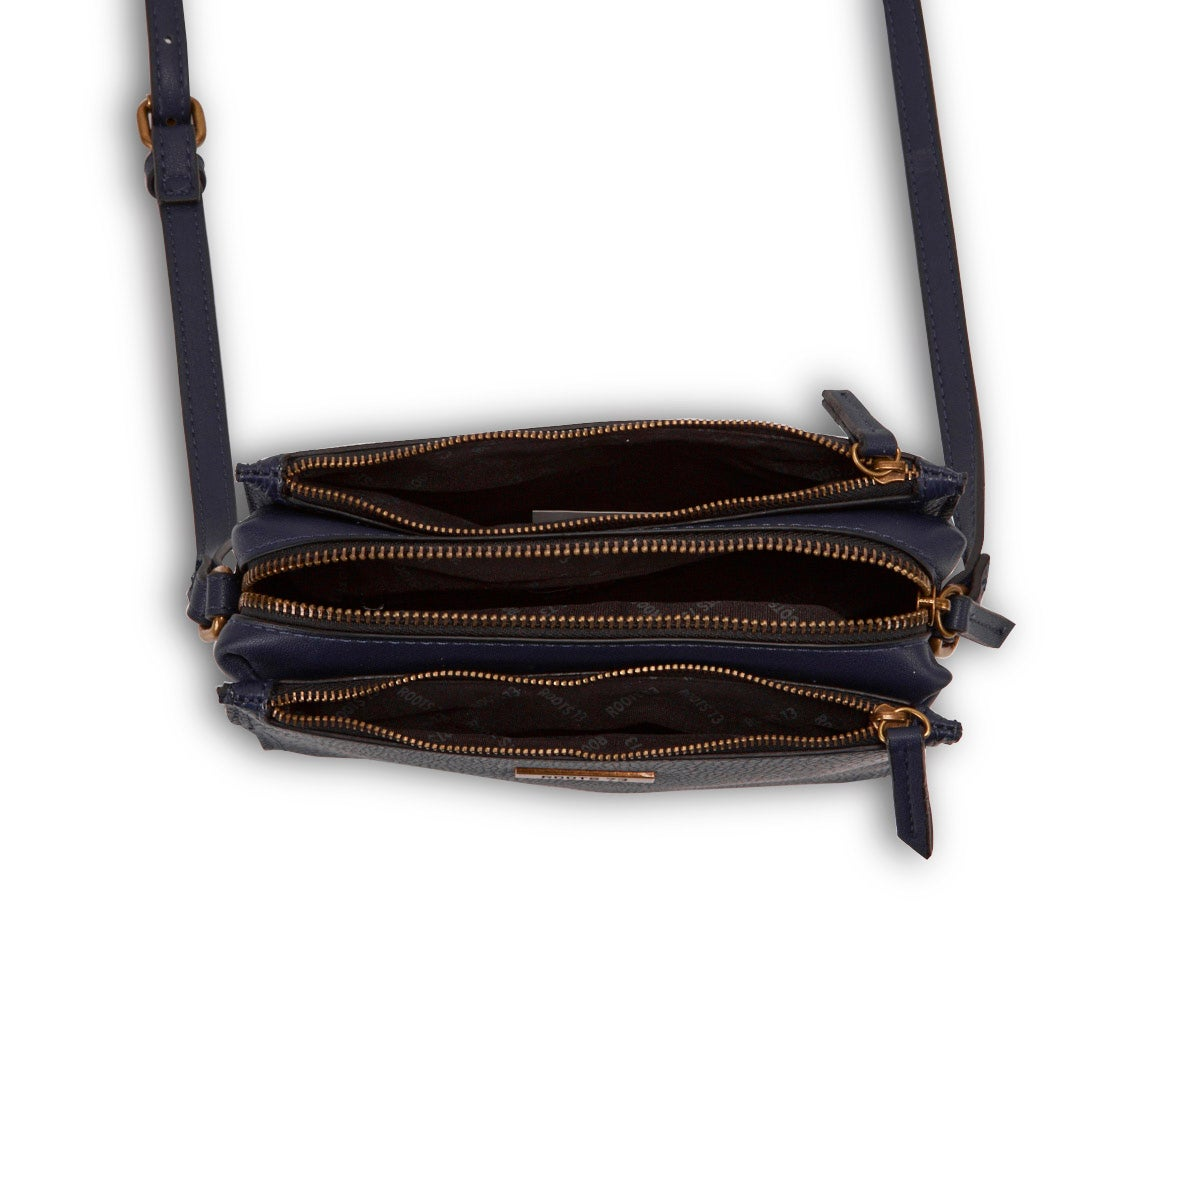 Lds Roots73 nvy 3 compartment crossbody